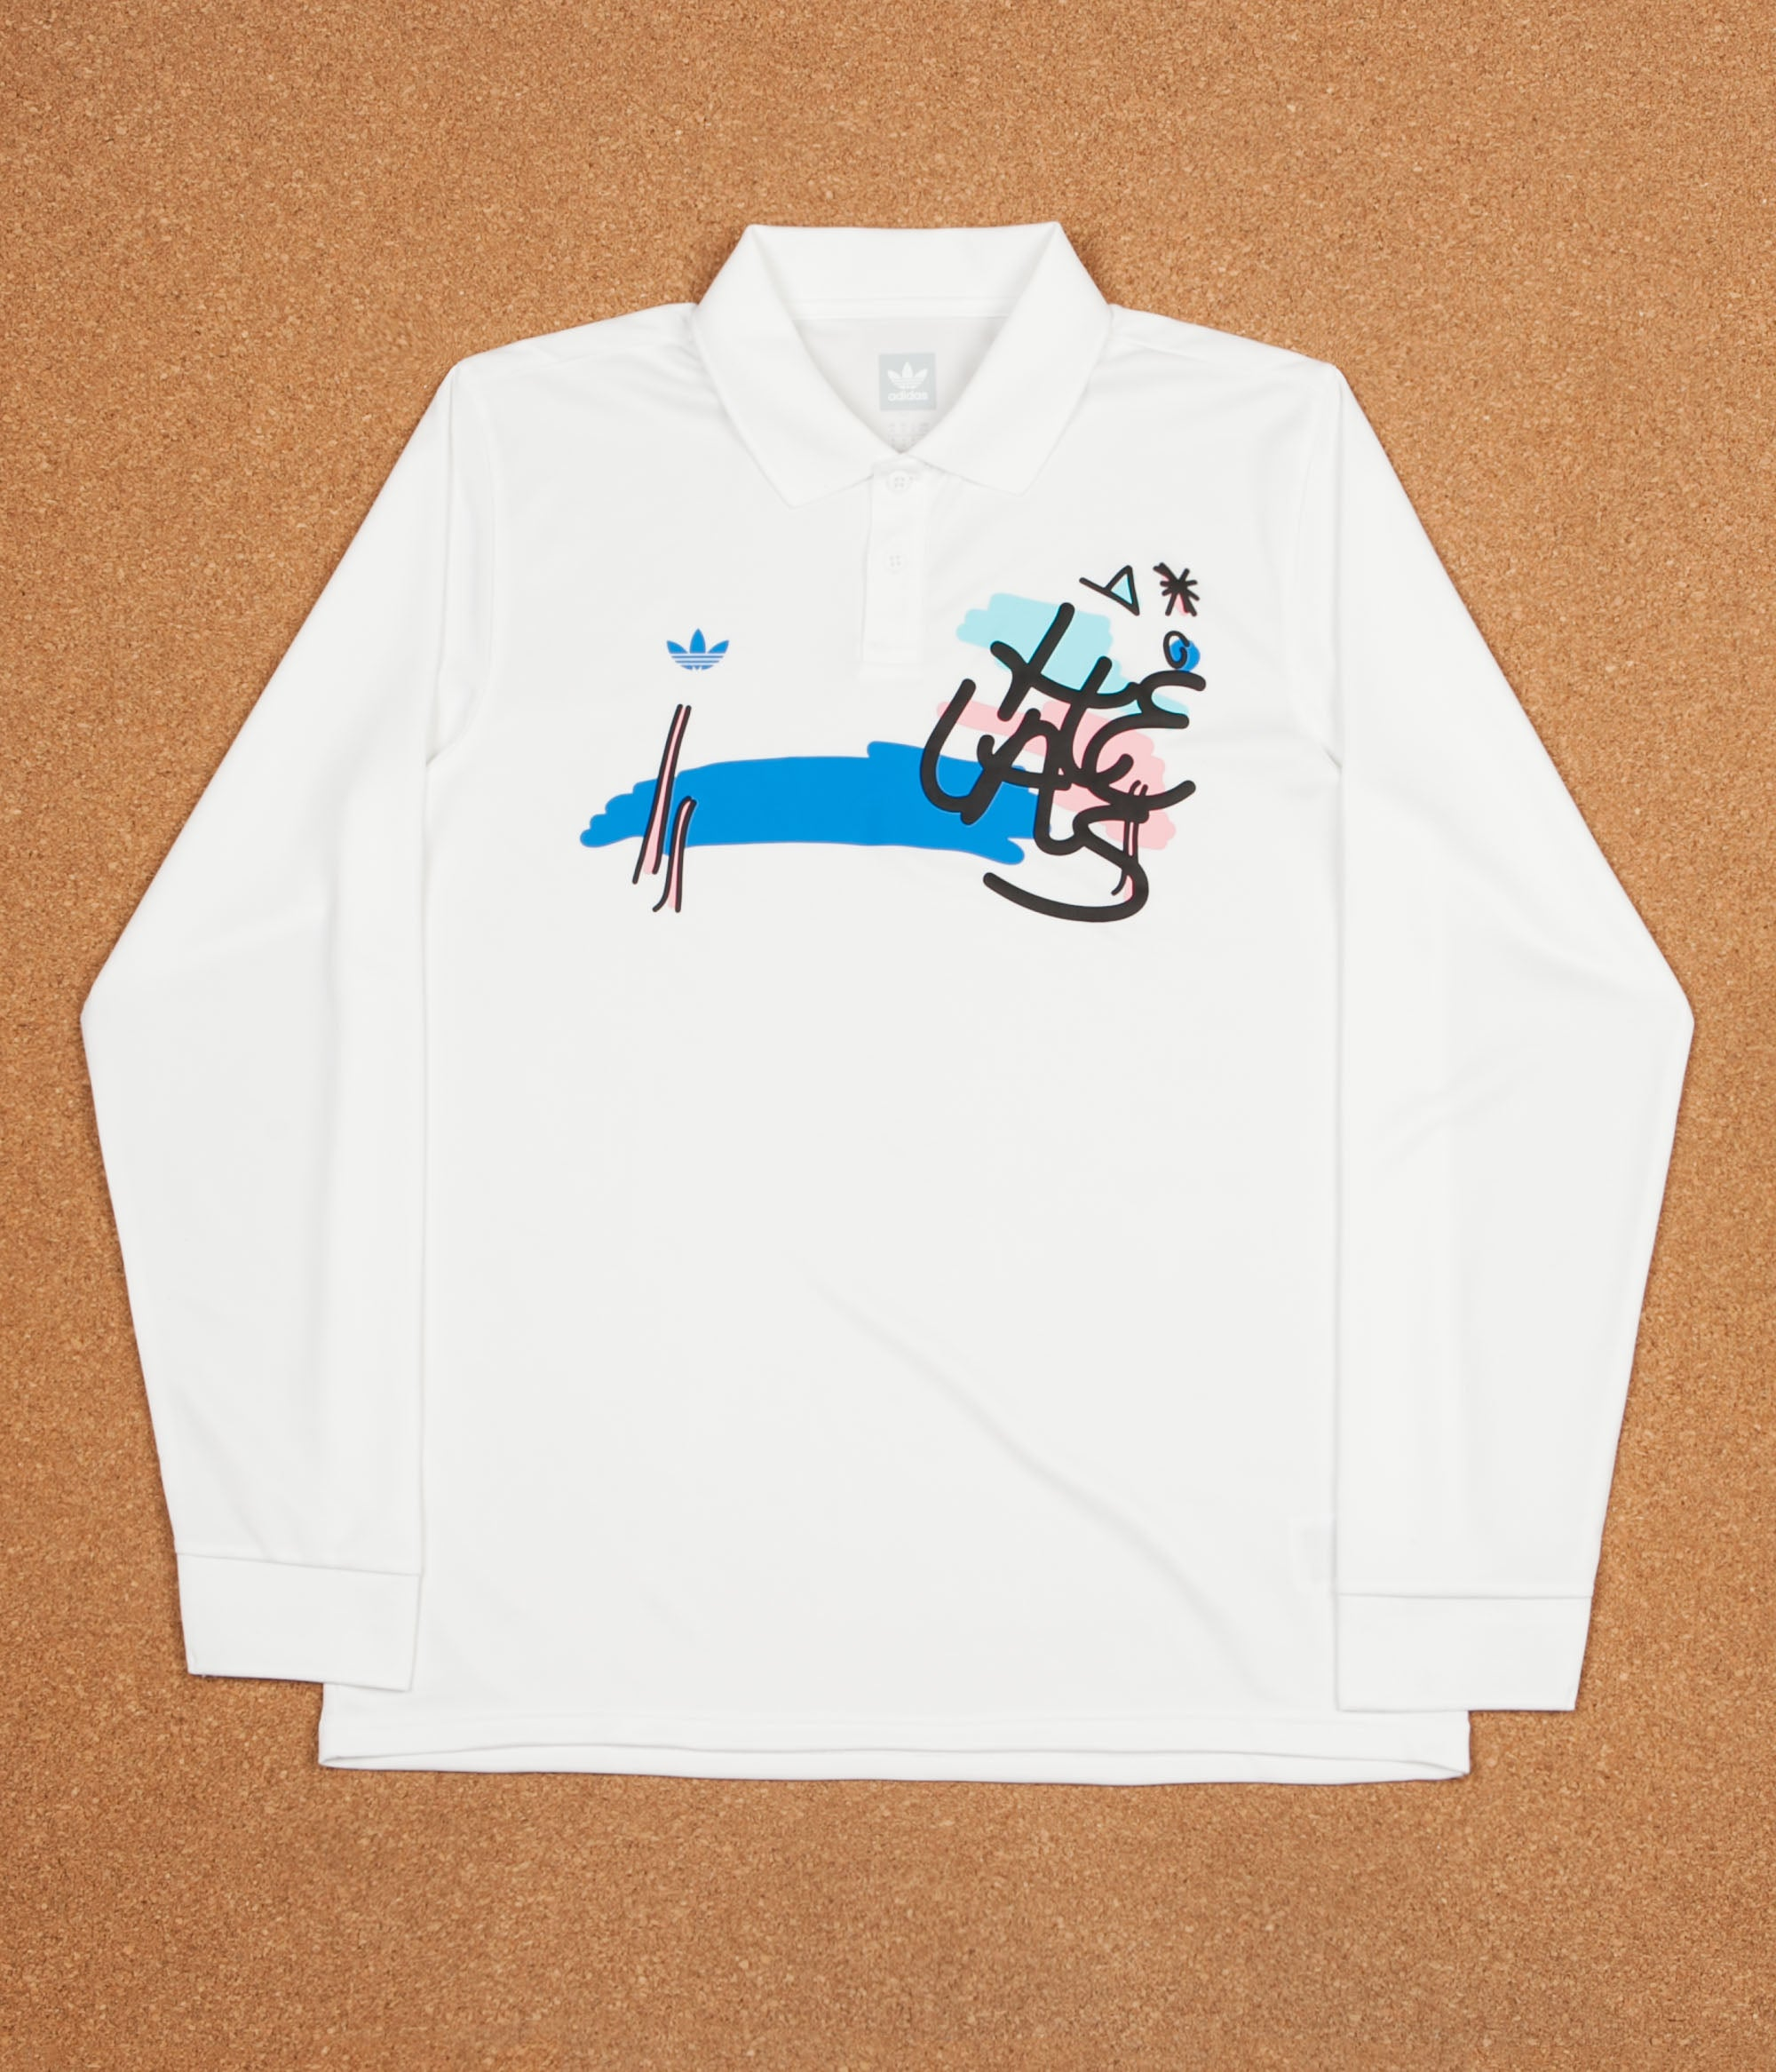 Adidas x Helas Polo Shirt - White